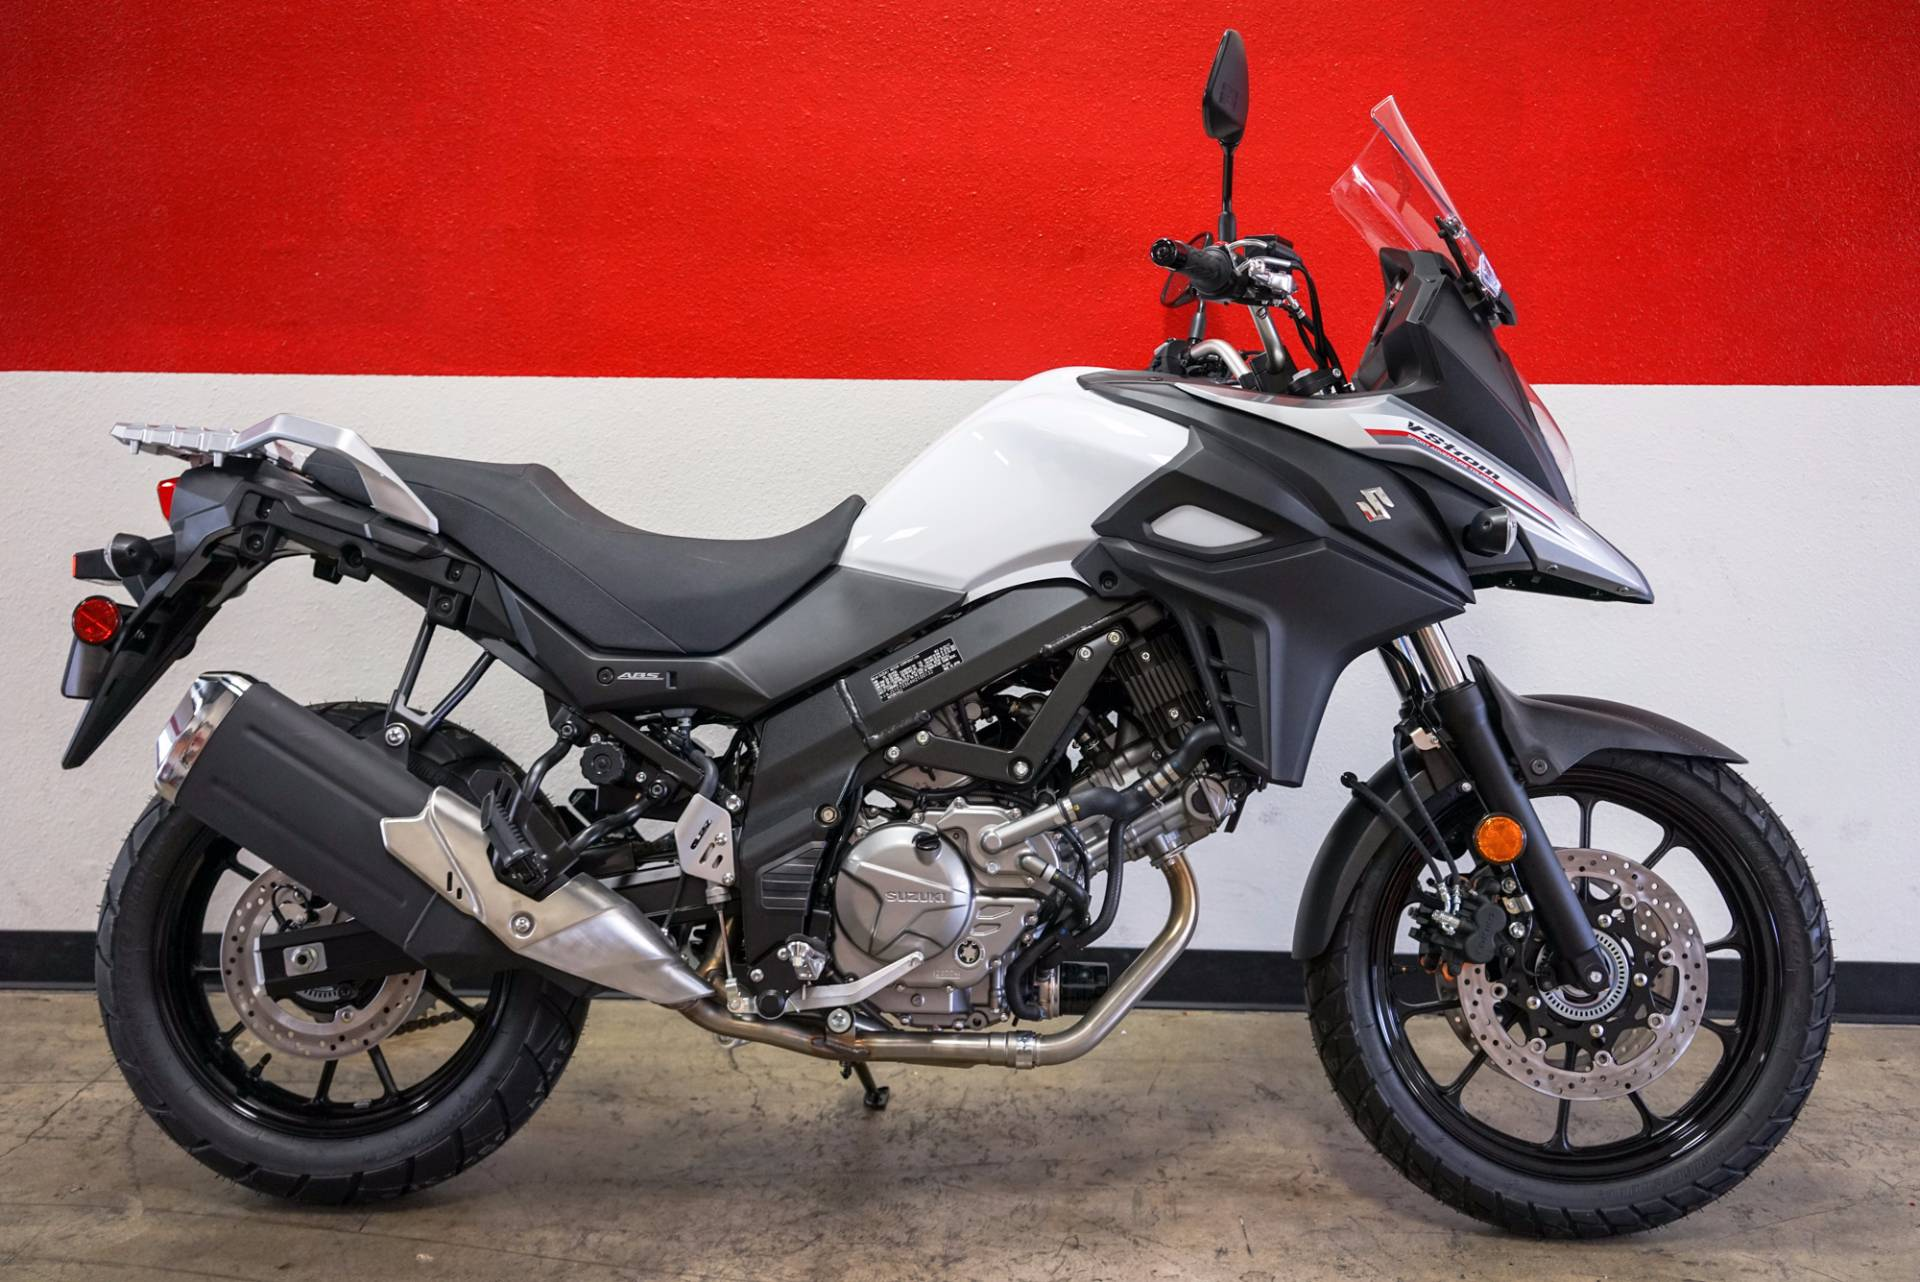 Renowned for its versatility reliability and value the V-Strom 650 has attracted many riders who